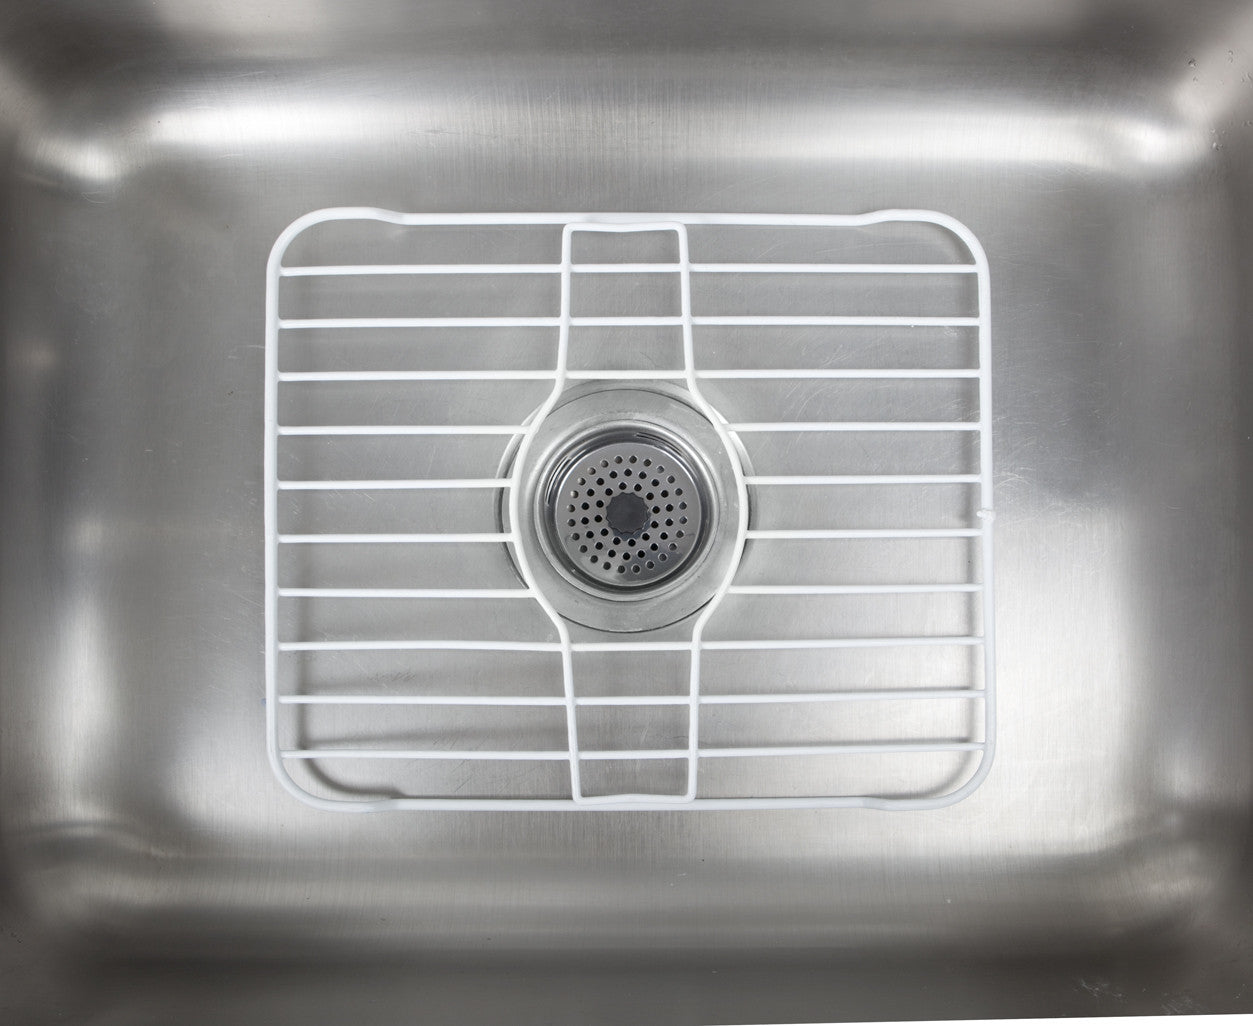 Charmant Kennedy Kitchen Sink Insert Rock, Sink Rust Resisted Protector Grid, White,  13 Long